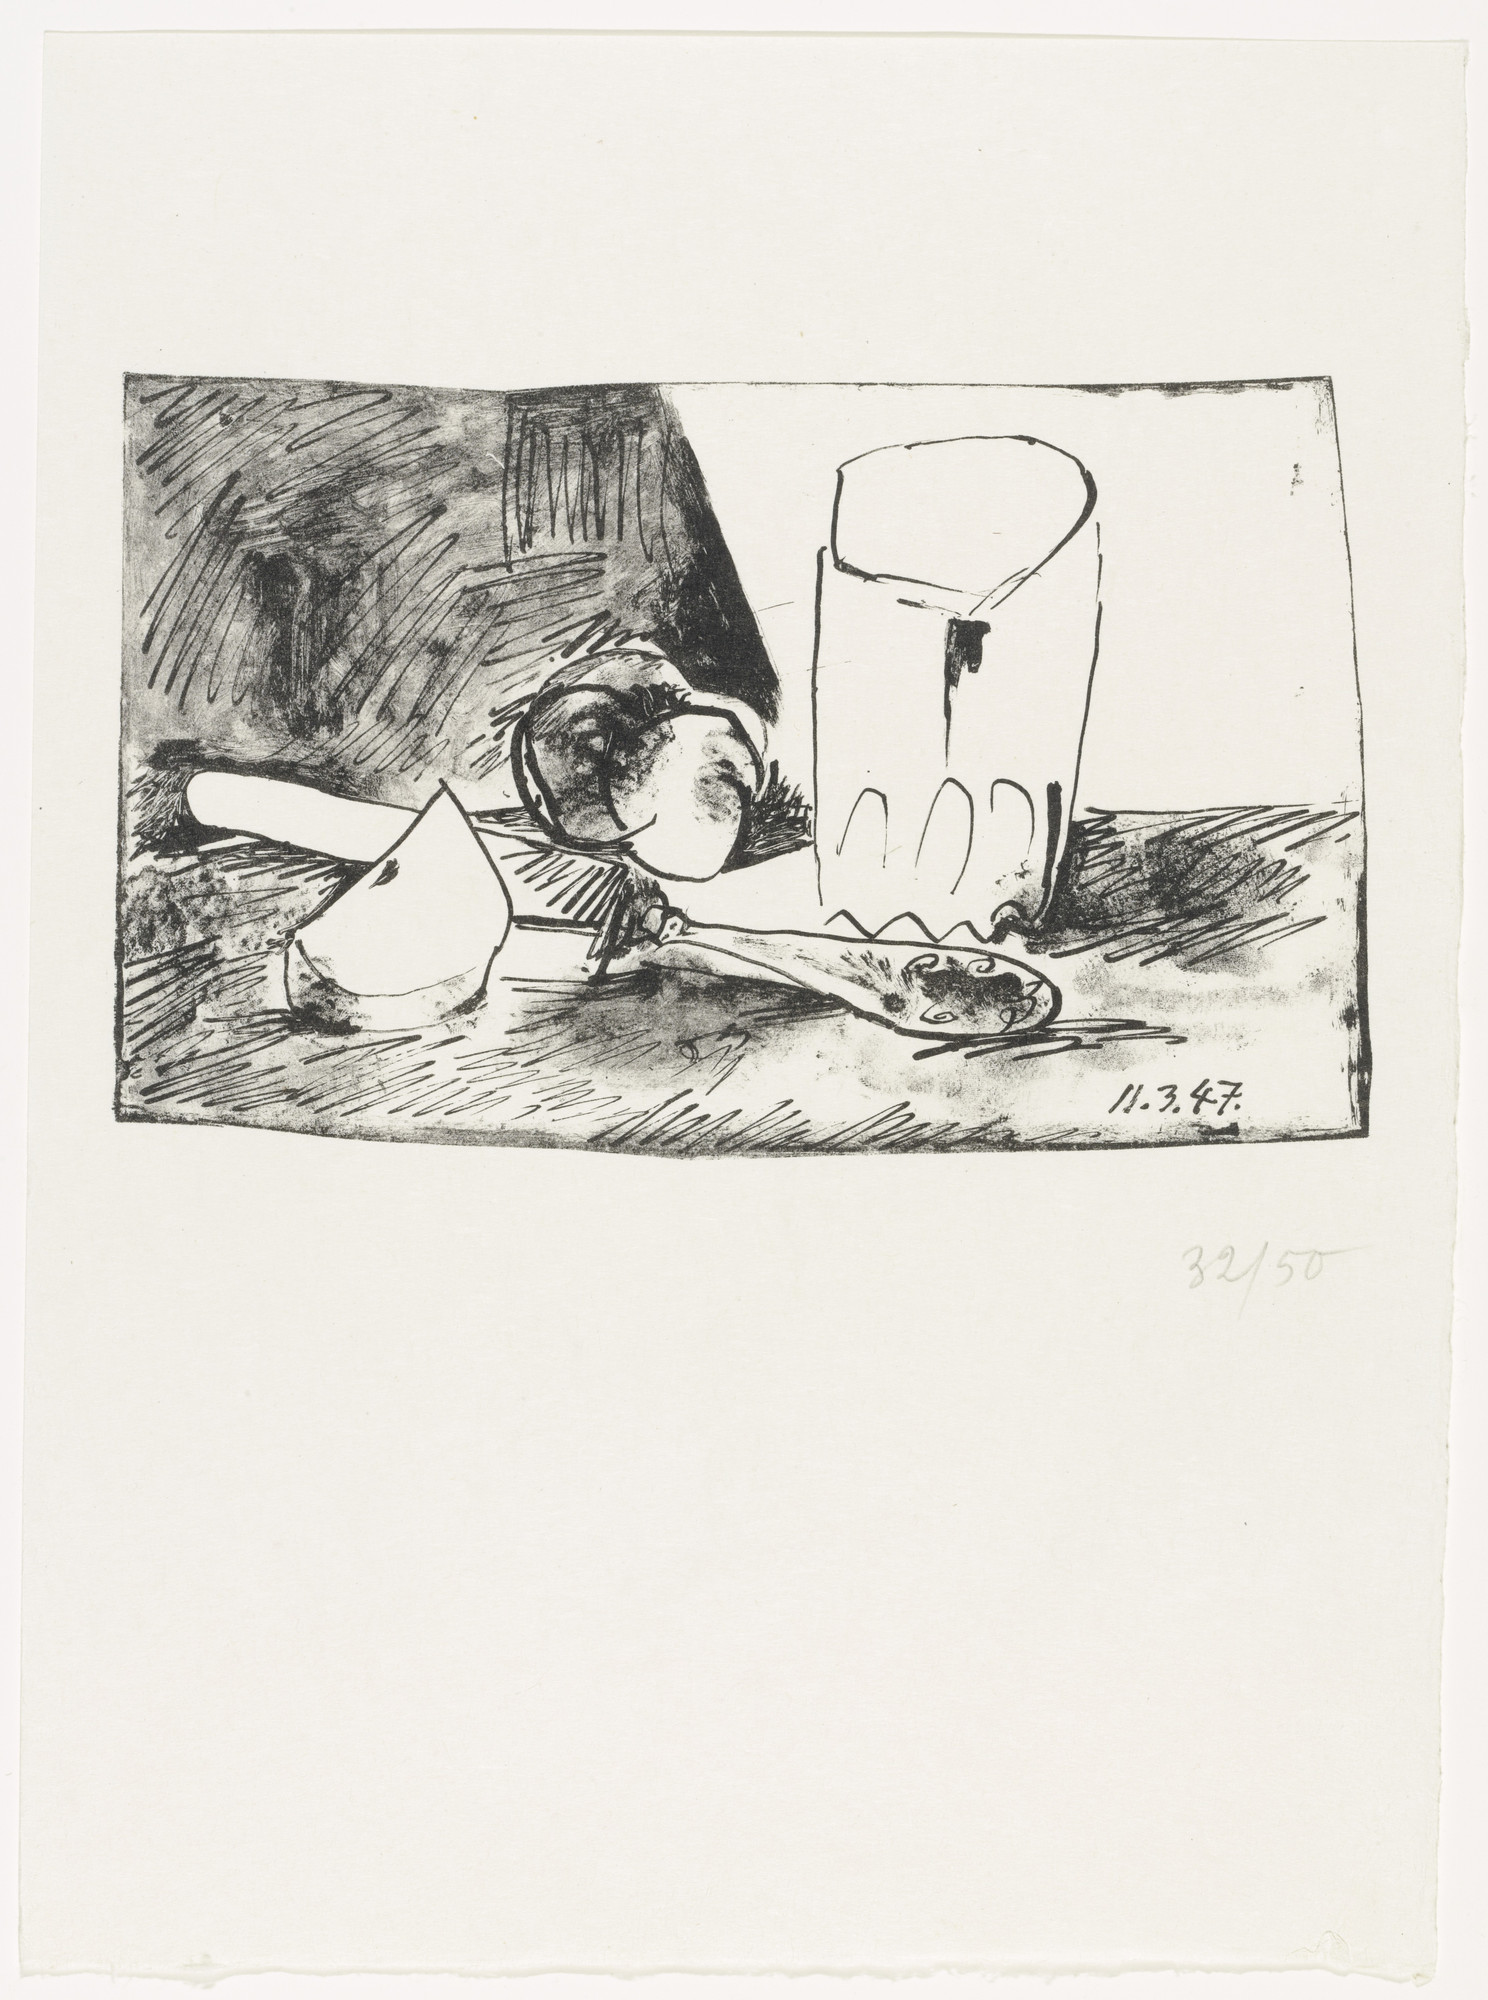 Pablo Picasso. Apples, Glass, and Knife (supplementary suite, plate 4) from Dans l'Atelier de Picasso. (Print executed 1947)